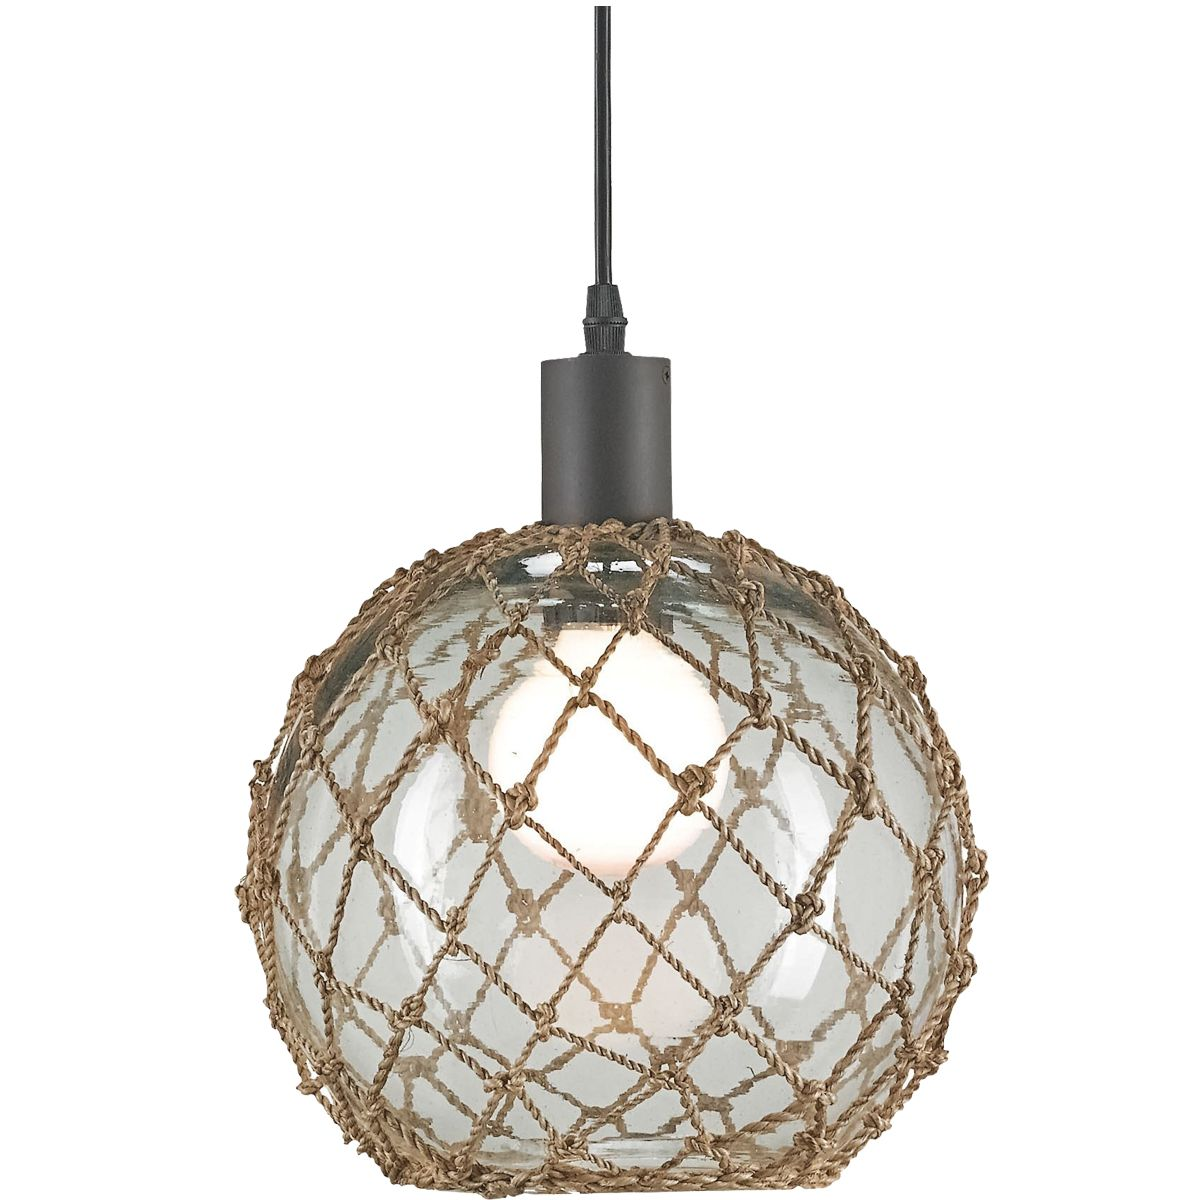 Fishing net sphere chandelier glass float brig pinterest fish cottage and french country painted furniture and decor pendant lightschandelier arubaitofo Images